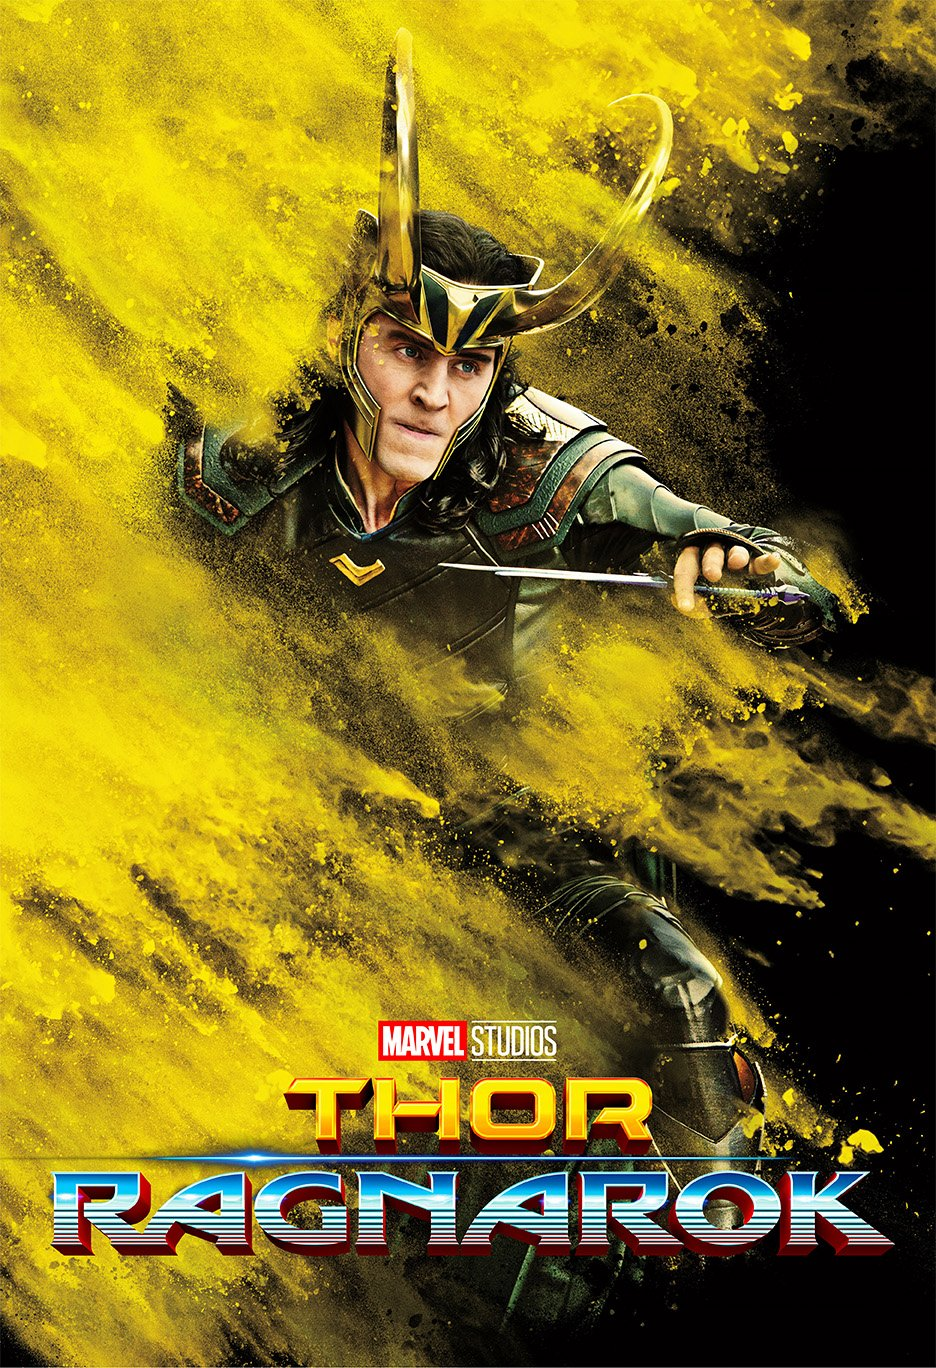 Thor 3 : Ragnarok (2017) - Loki - 13 in x 19 in Movie Poster Flyer BORDERLESS + Free 1 Tile Magnet